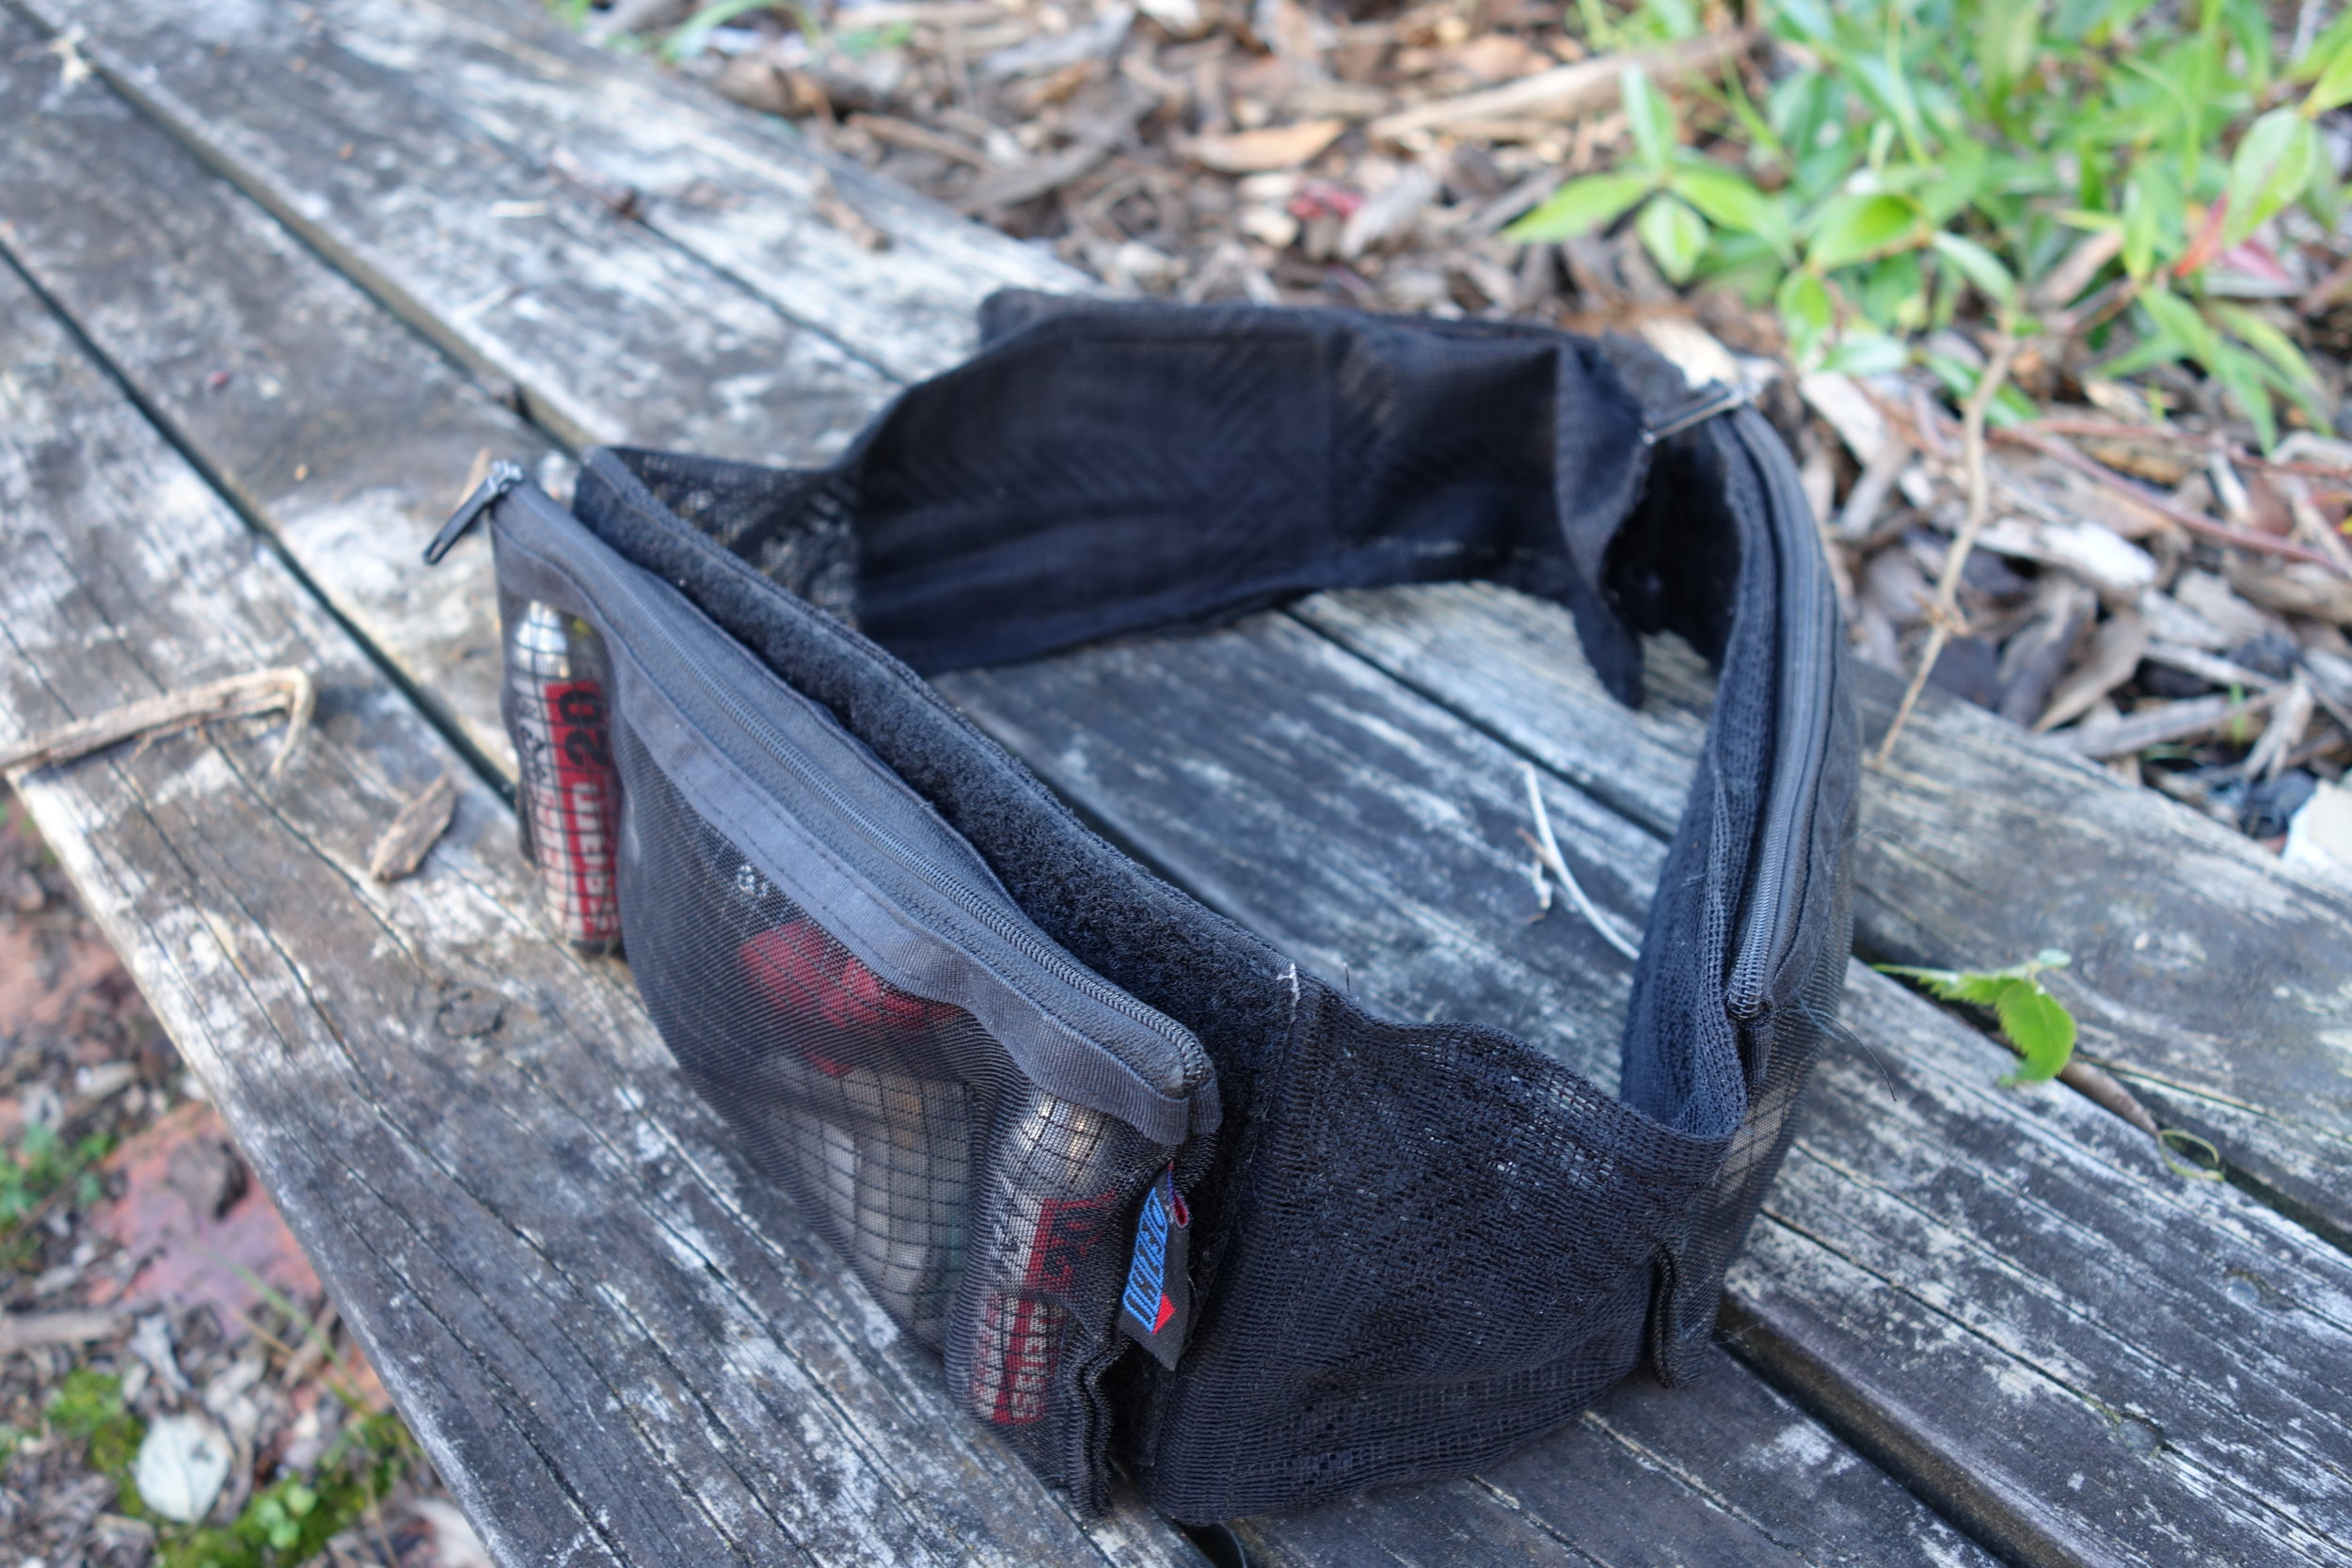 The Batman and I collaborated on this under-jersey waist belt. I wasn't always a media guru.In the 70's while still at school I formed a marble bag sewing empire, so It was pretty natural for me to move into high-end mountainbike wear manufacturing. This prototype I made from curtain mesh and a couple of pencil cases from the $2 shop. It doubles as a corset to make me look more like The Batman.